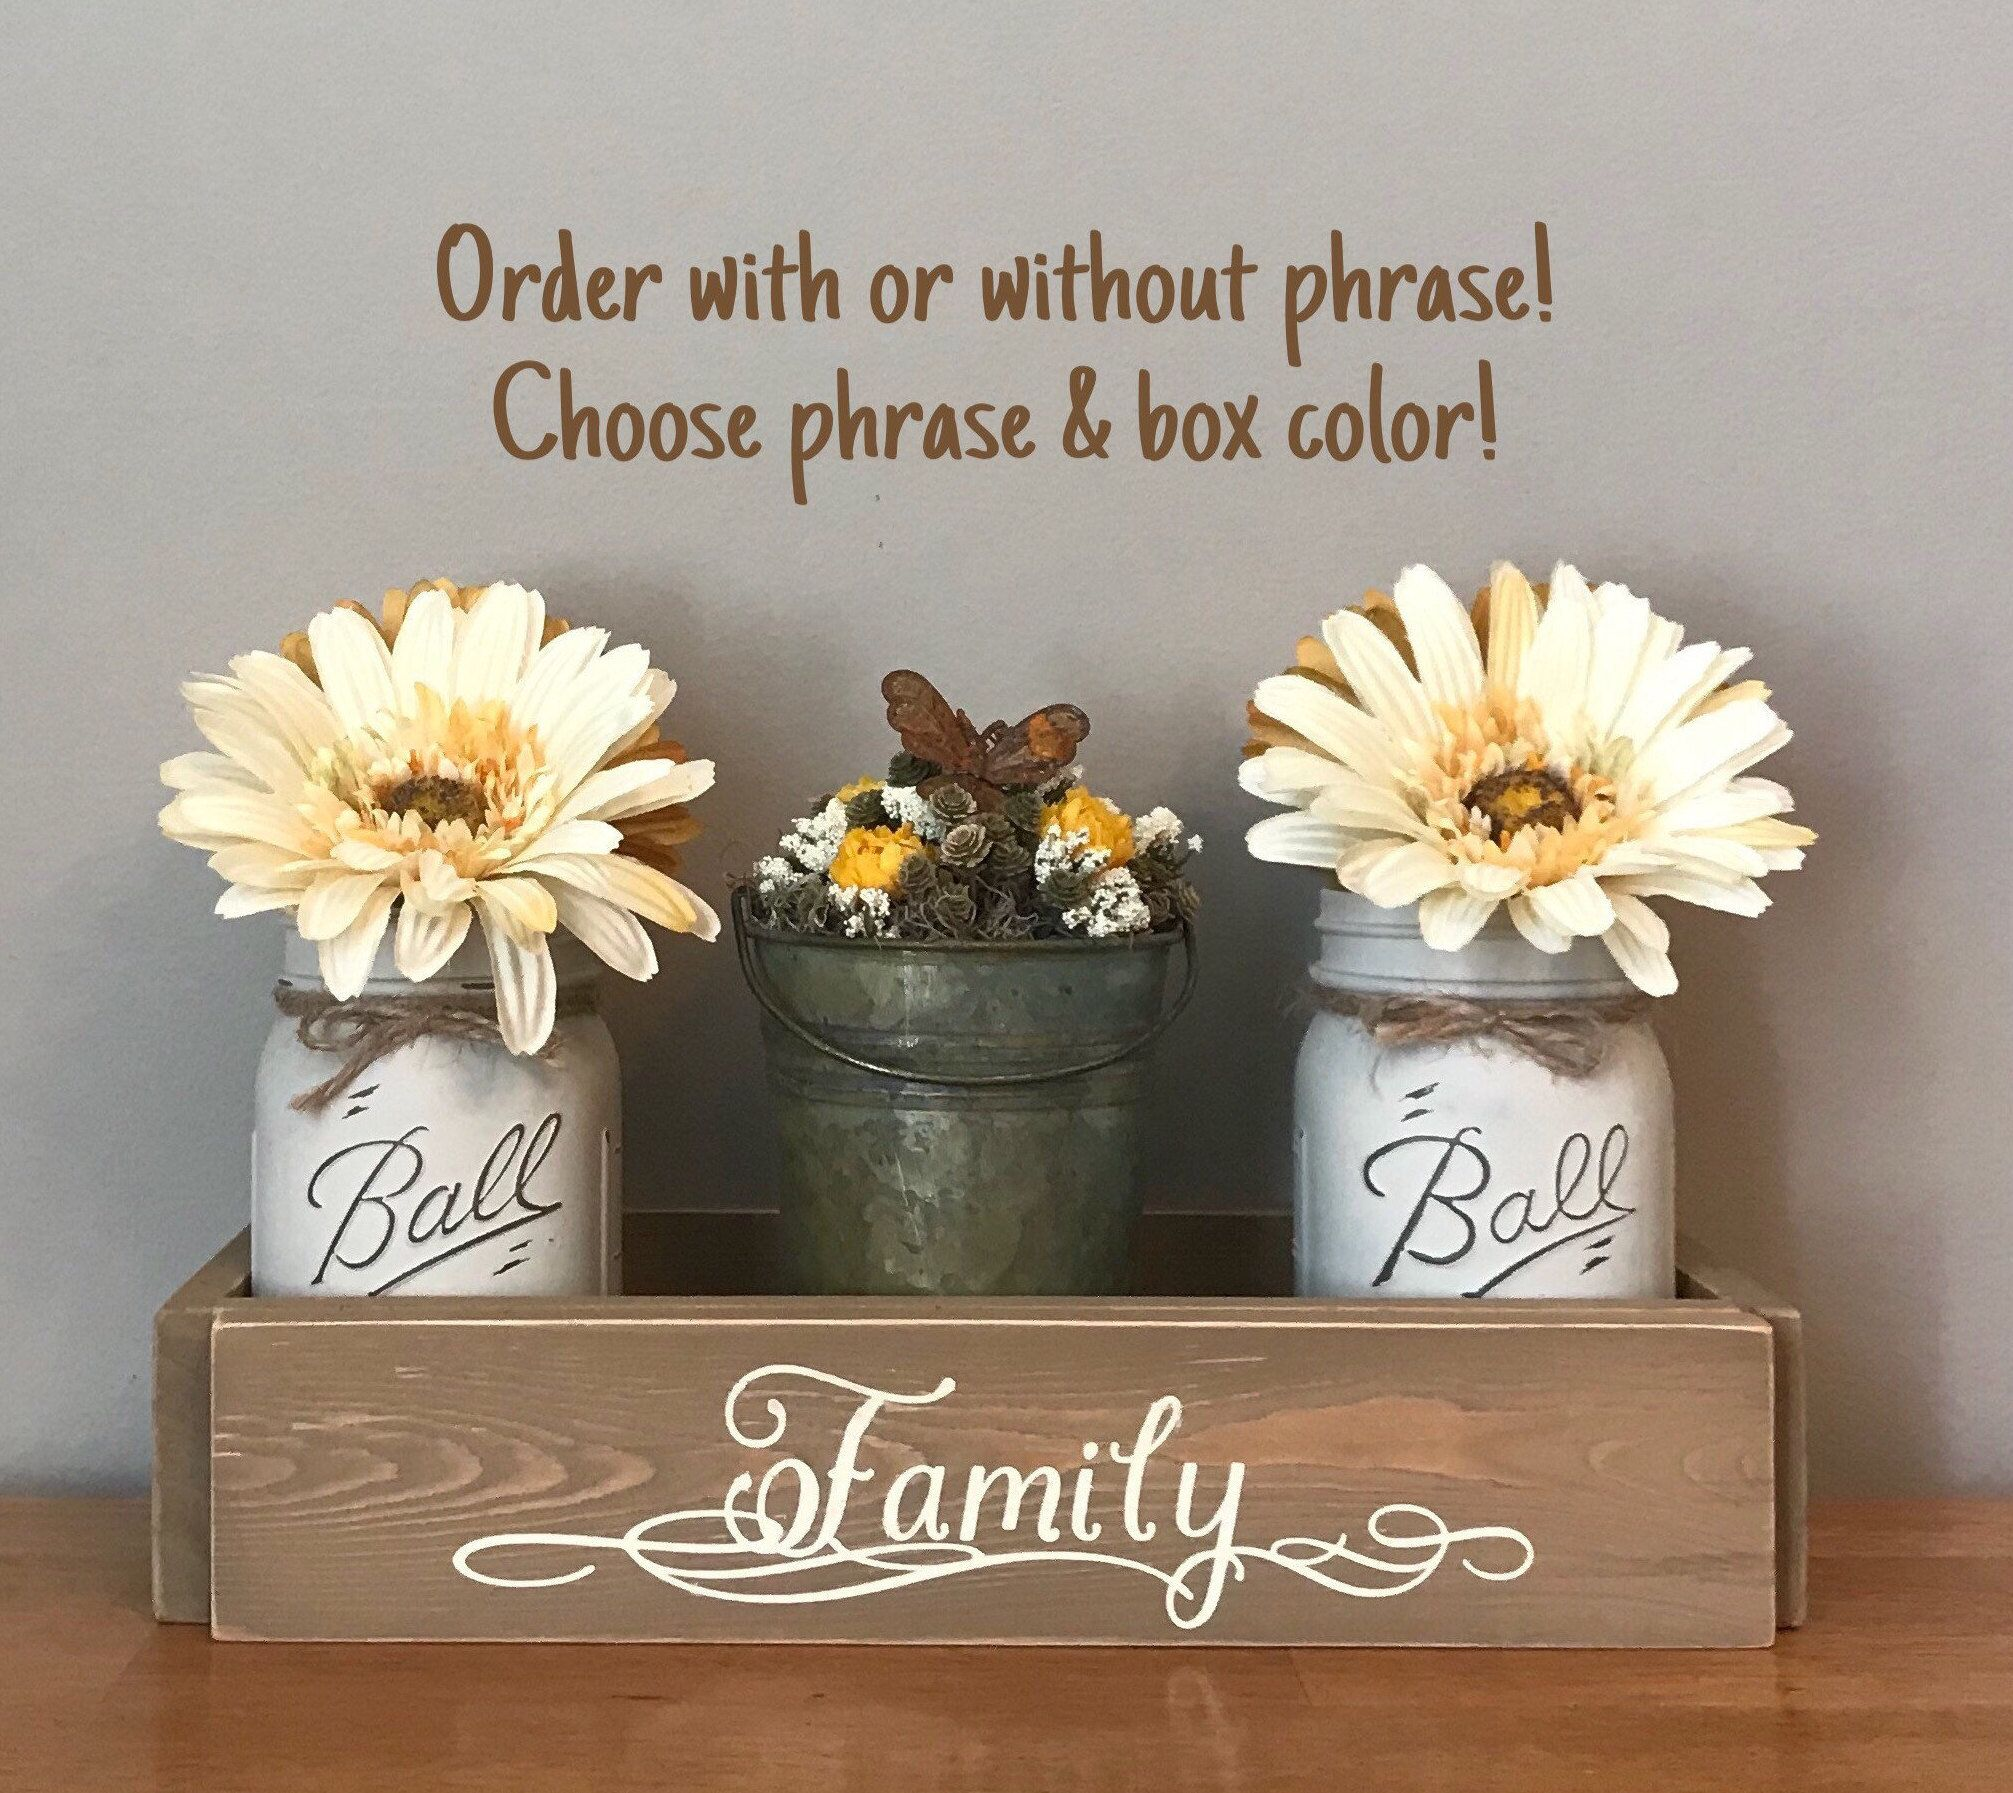 Mason Jar Centerpieces For Dining Table Kitchen Table Centerpiece Mason Jar Decor F Kitchen Table Centerpiece Kitchen Decor Themes Kitchen Decor Inspiration